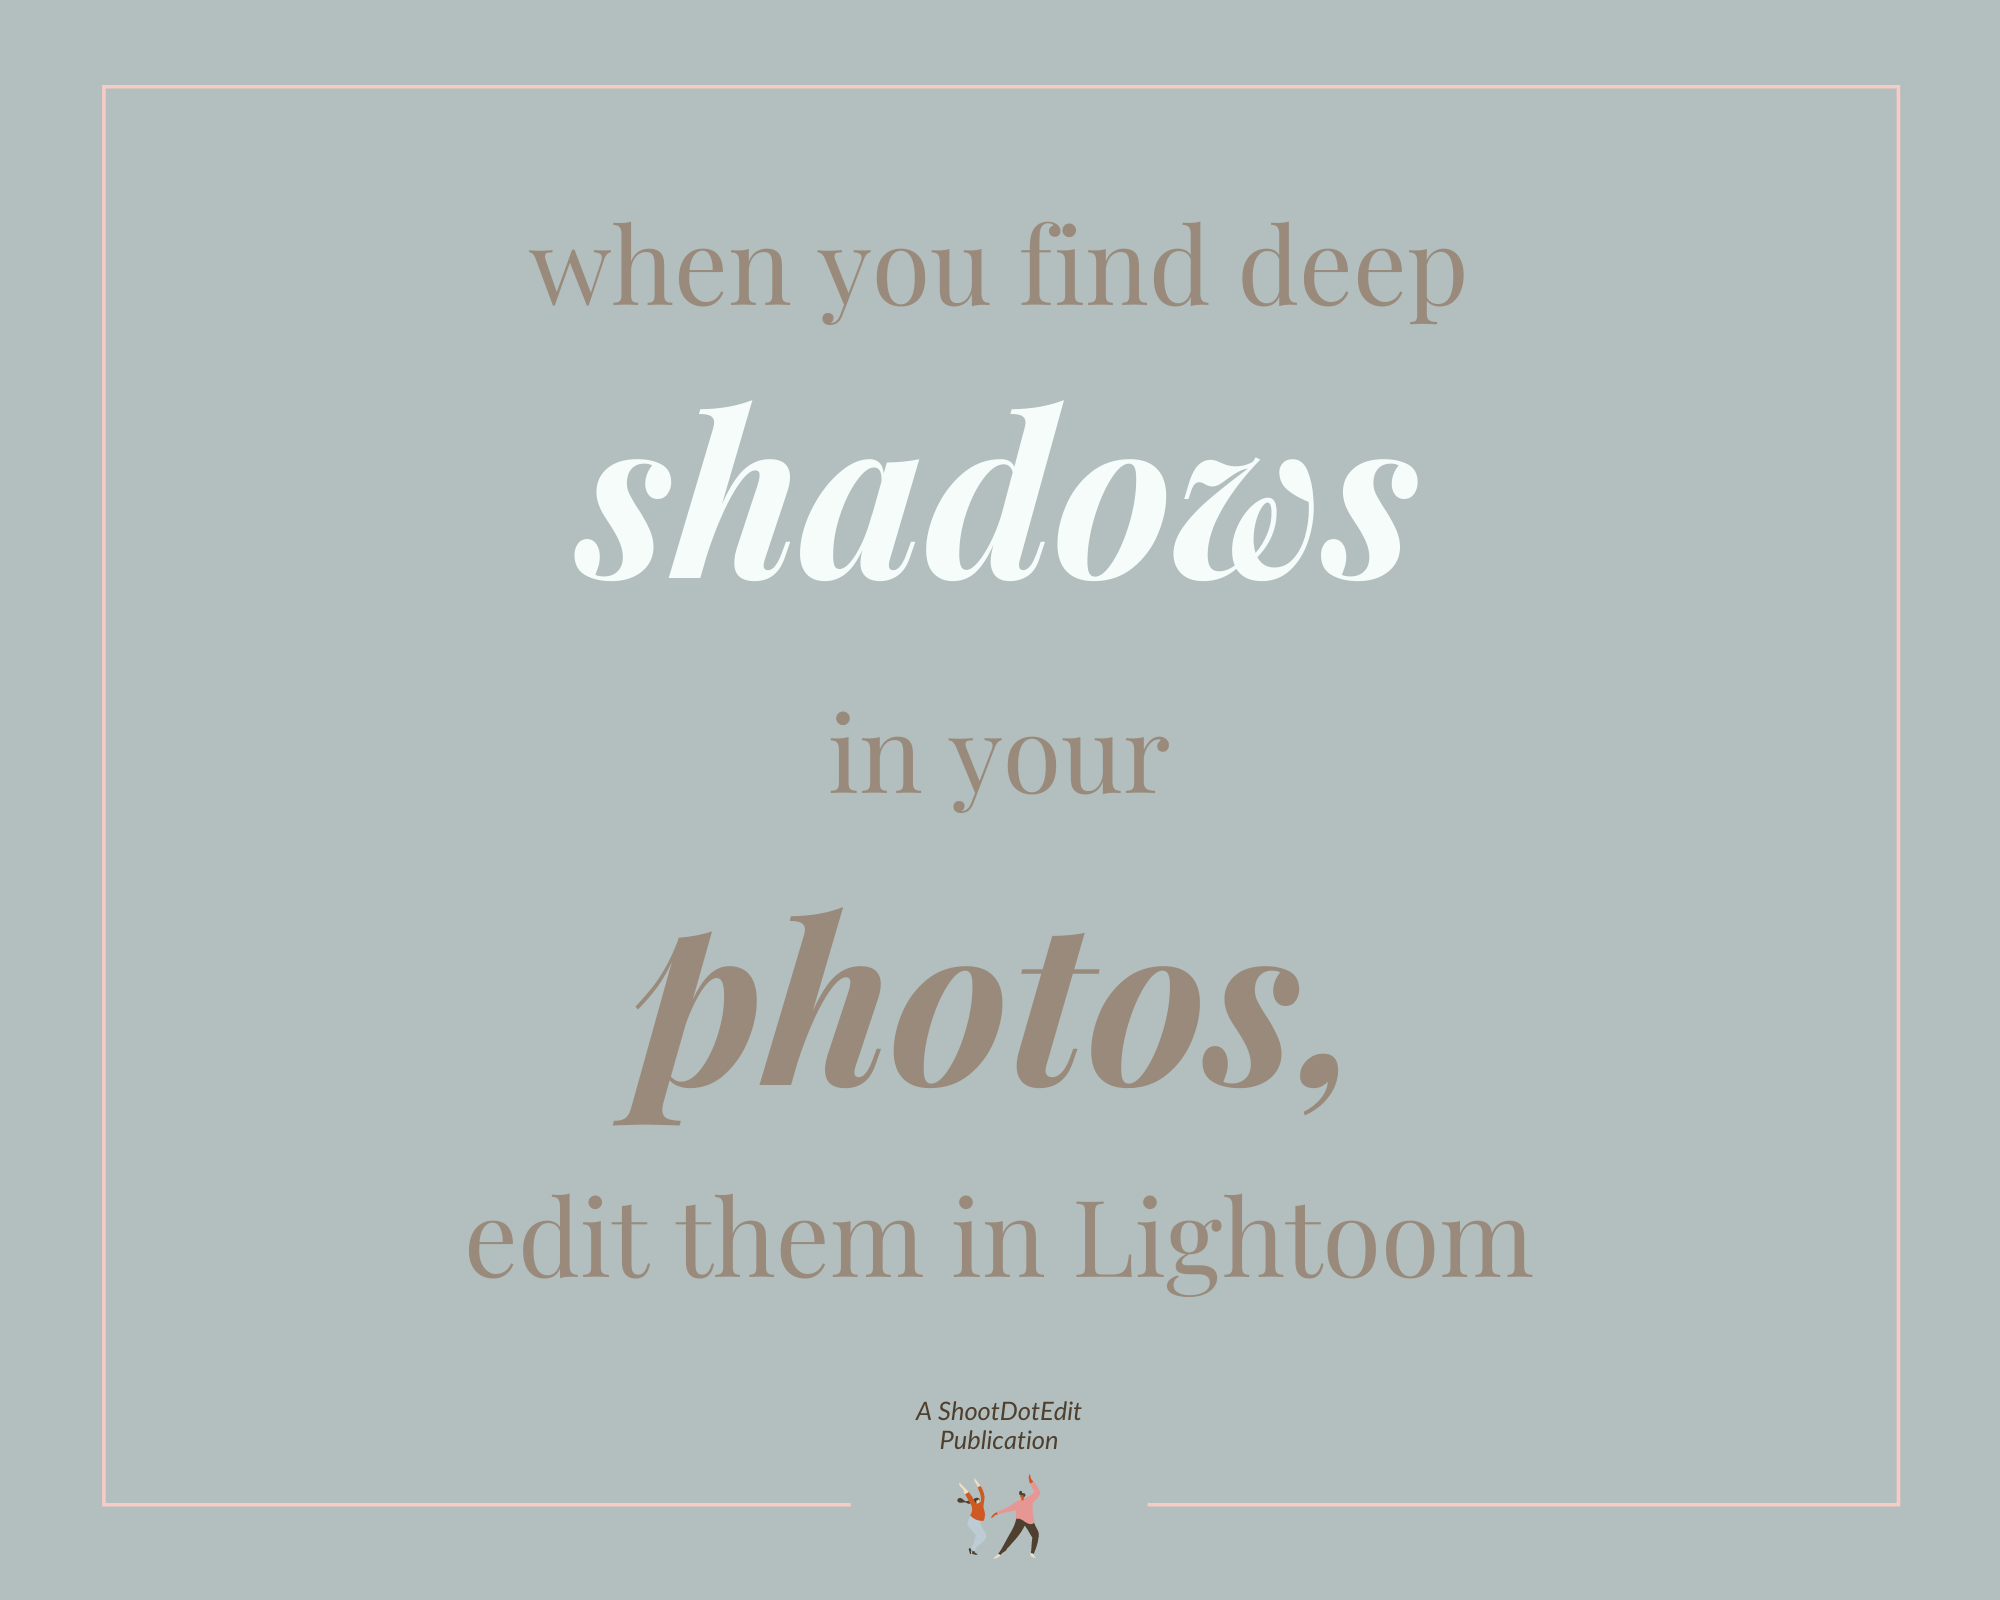 Infographic stating when you find deep shadows in your photos, edit them in Lightroom